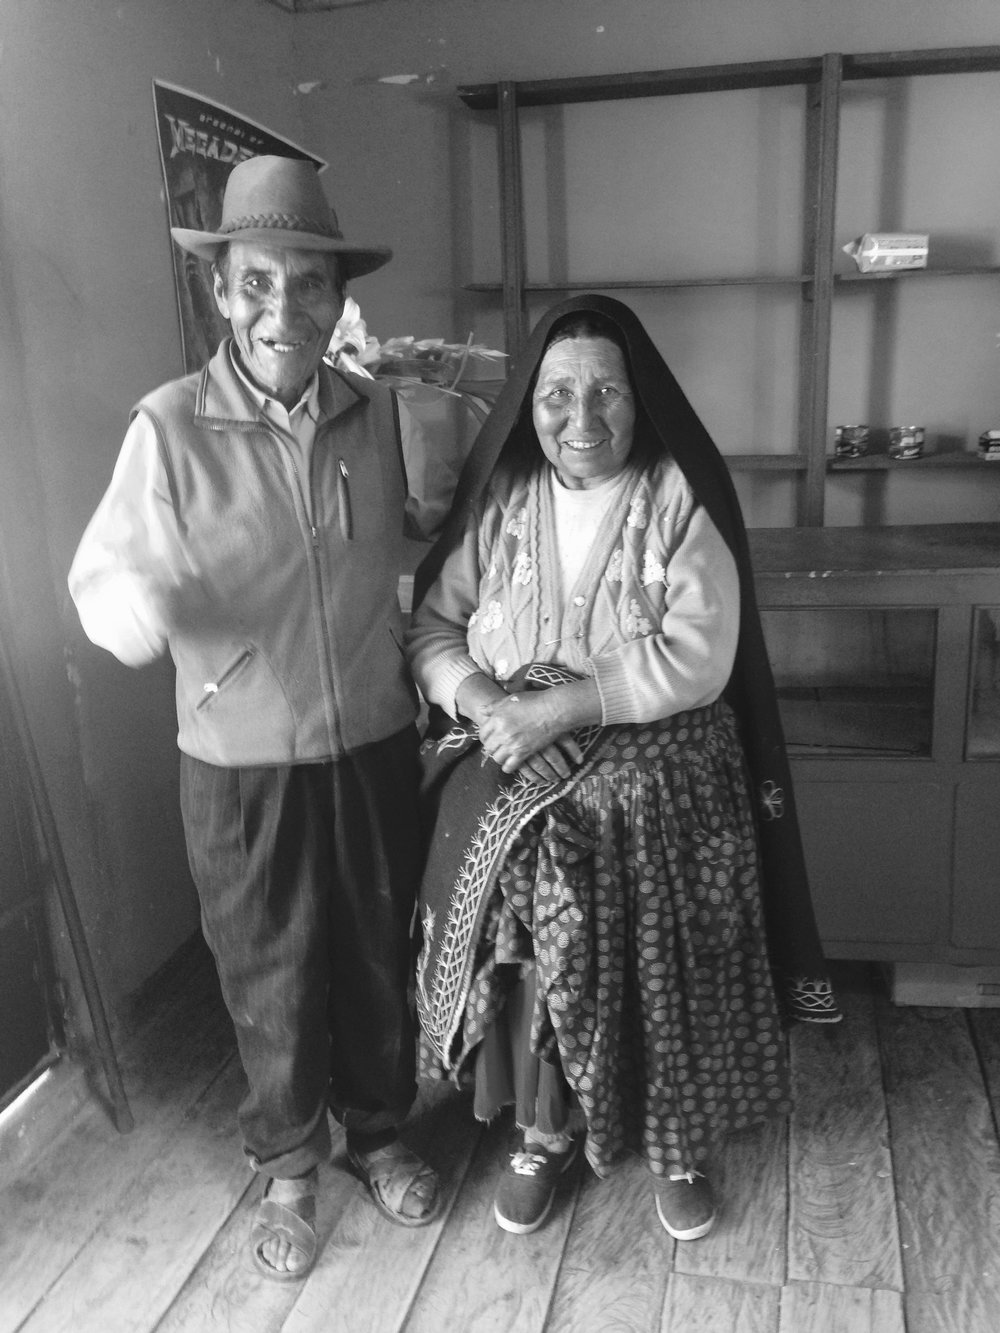 Benedicto and Antonia Pacompia, Island of Amantani, Lake Titicaca, Peru.